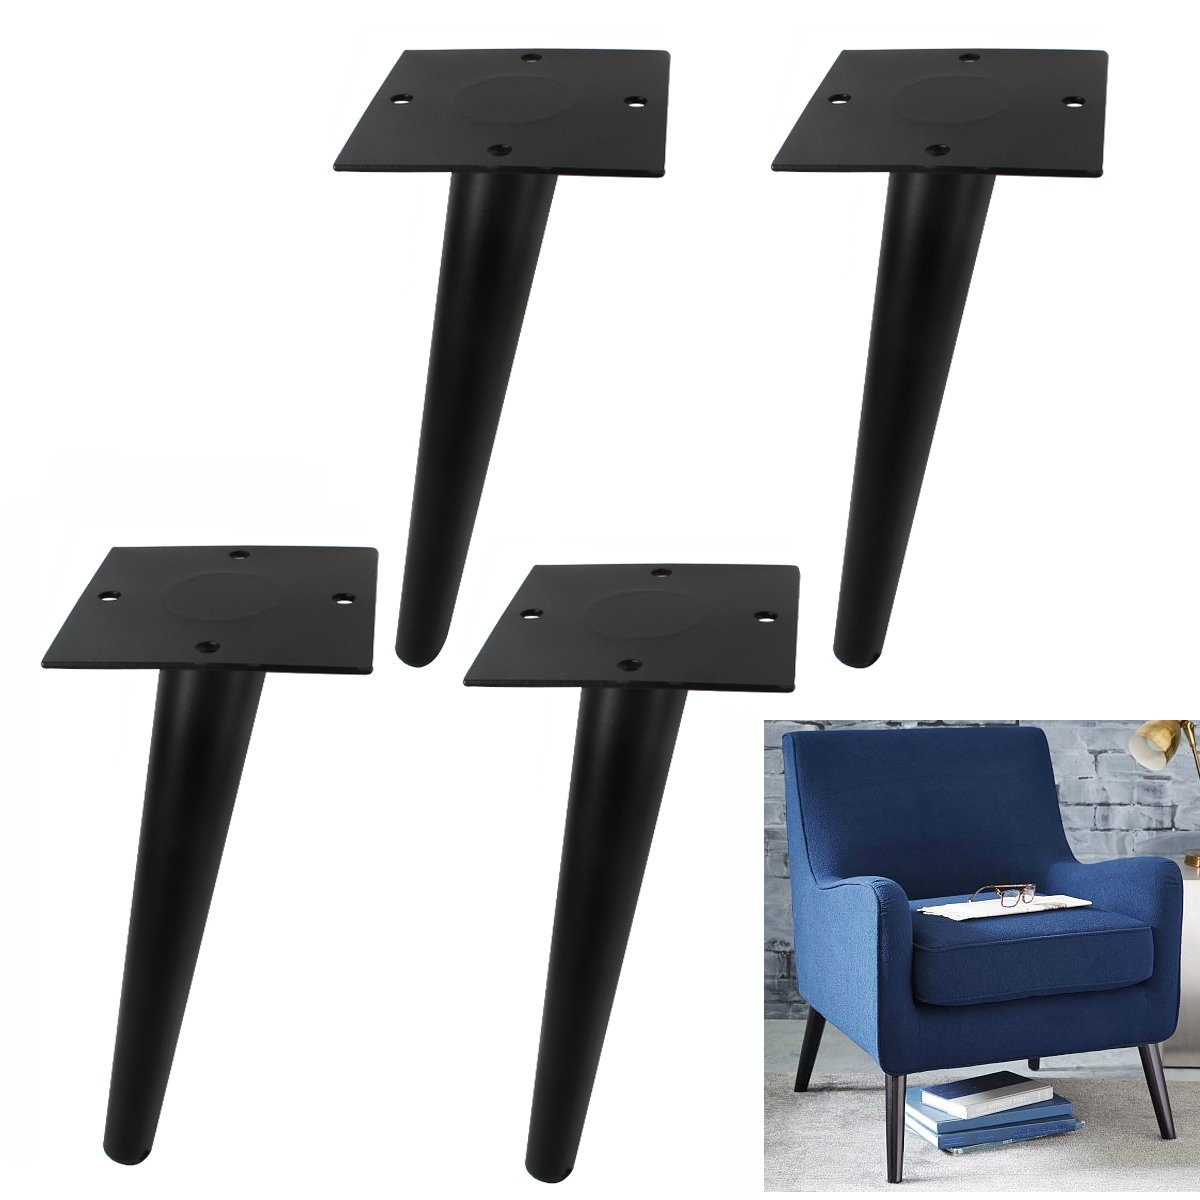 AORYVIC Coffee Table Legs Replacement 8 inches Metal Sofa Feet Couch Armchair Footstool Bed Bench Dresser Stand Legs Tapered Matt Black Pack of 4